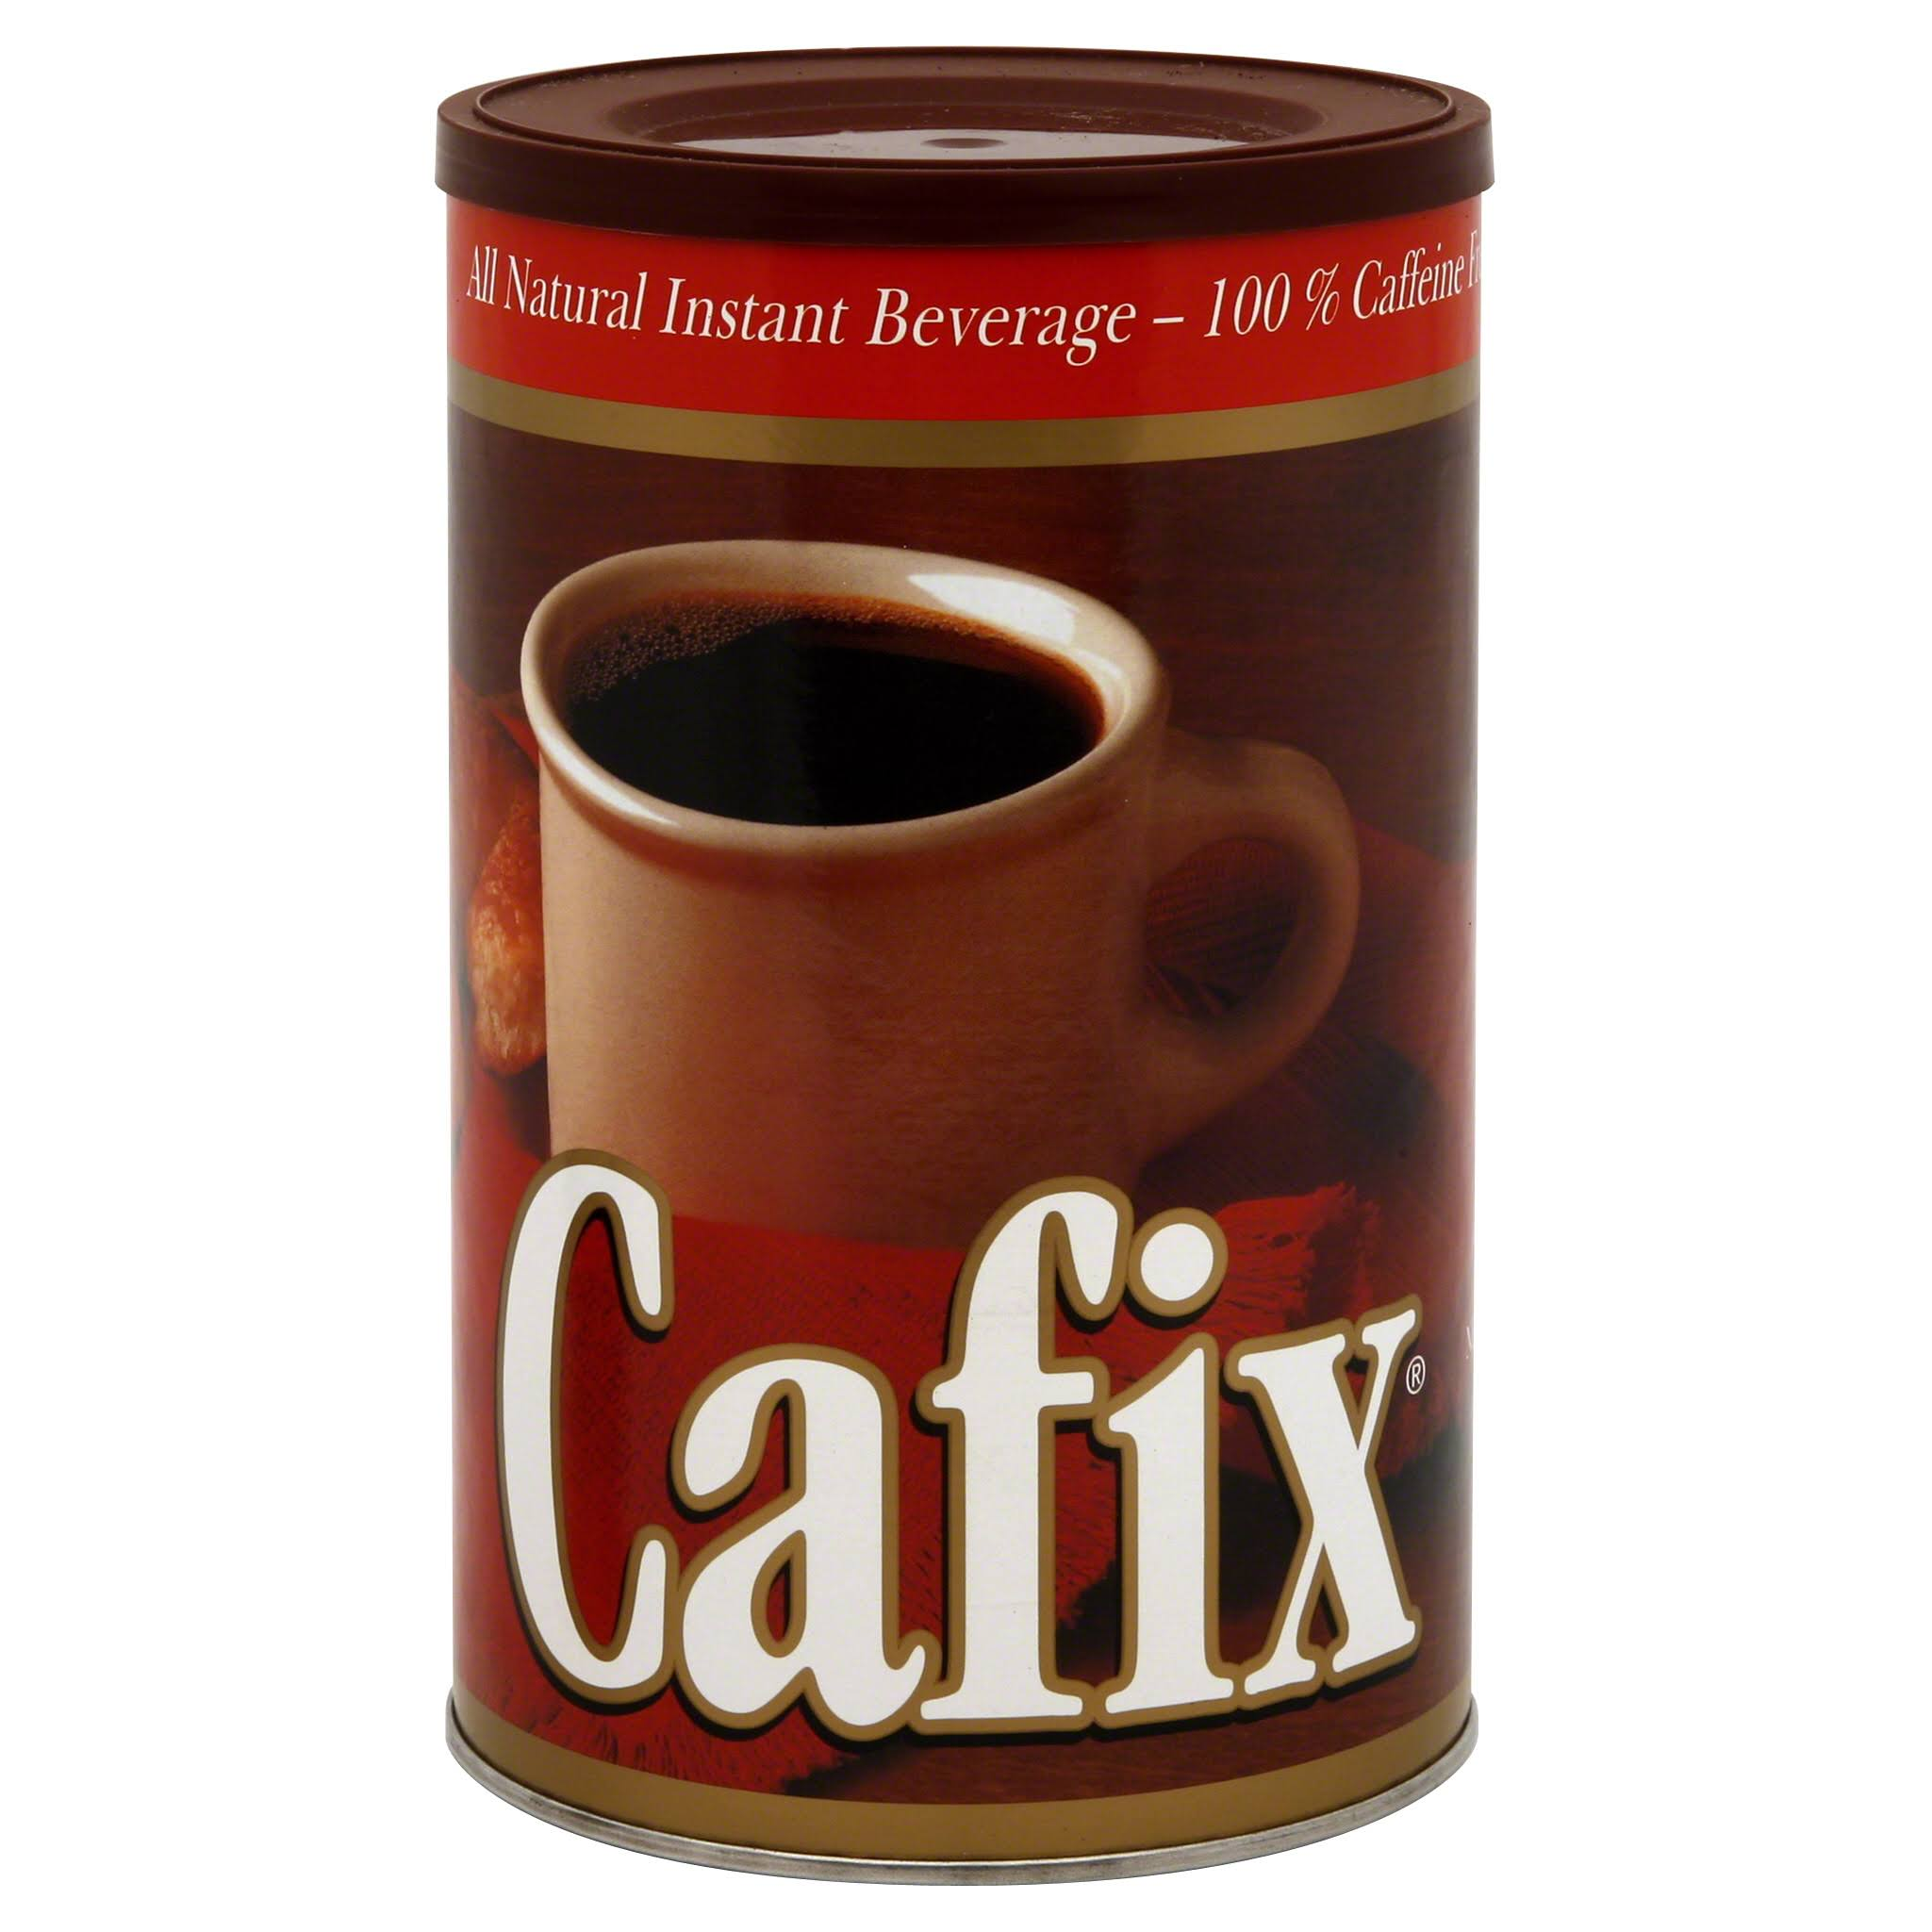 Cafix All Natural Instant Beverage Caffeine - 7.05oz